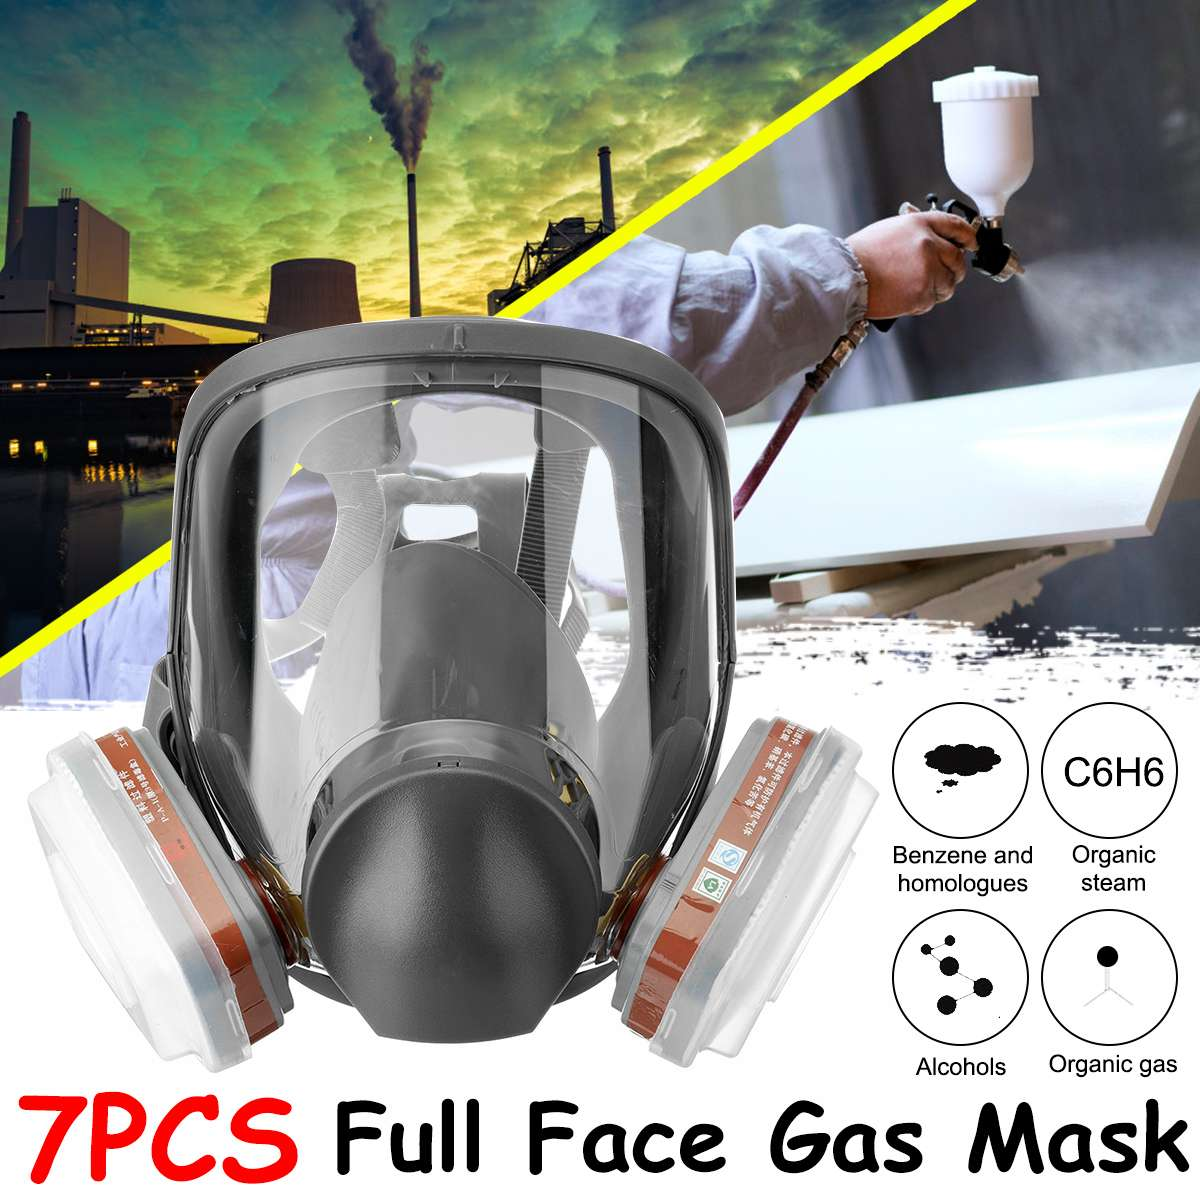 7PCS Protection Safety Respirator Gas Mask Same For 6800 Gas Mask Painting Spraying Full Face Facepiece Respirator